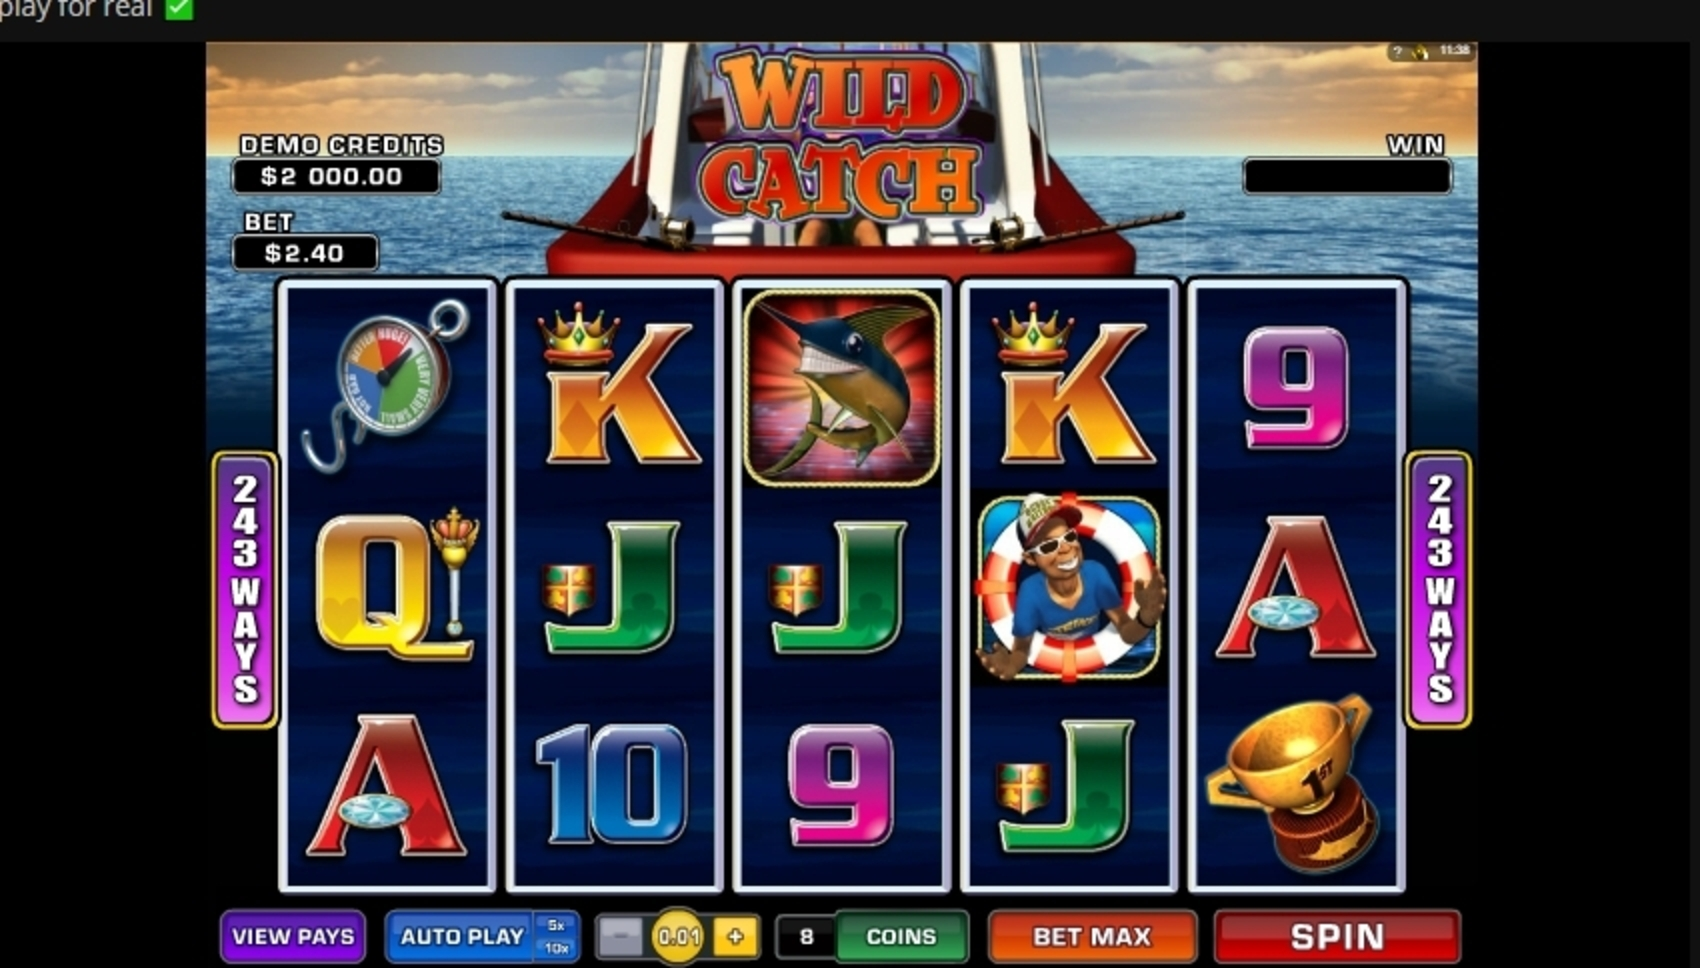 Reels in Wild Catch (Microgaming) Slot Game by Microgaming